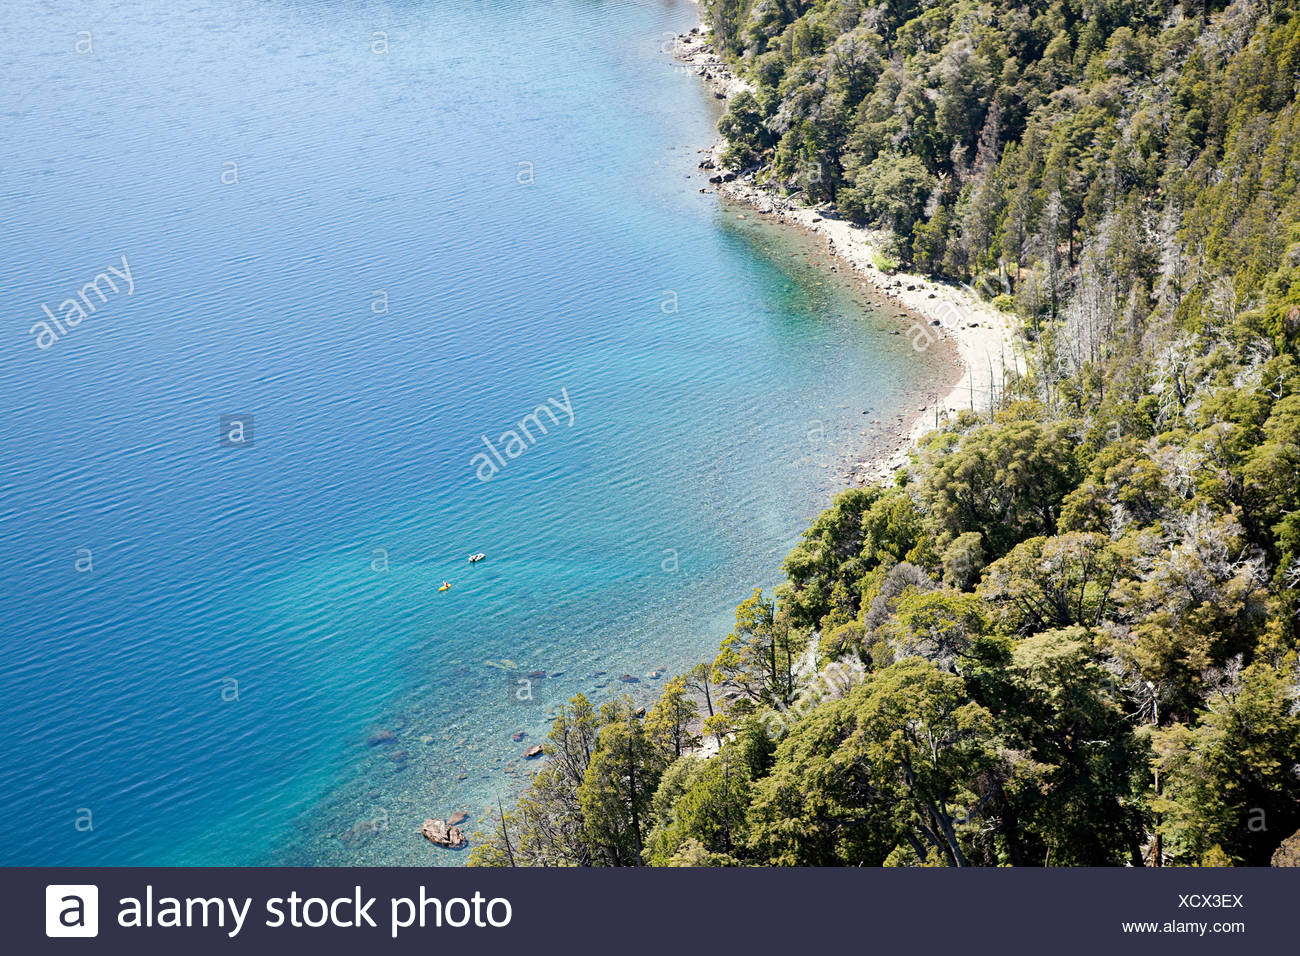 High angle view of coast and water - Stock Image